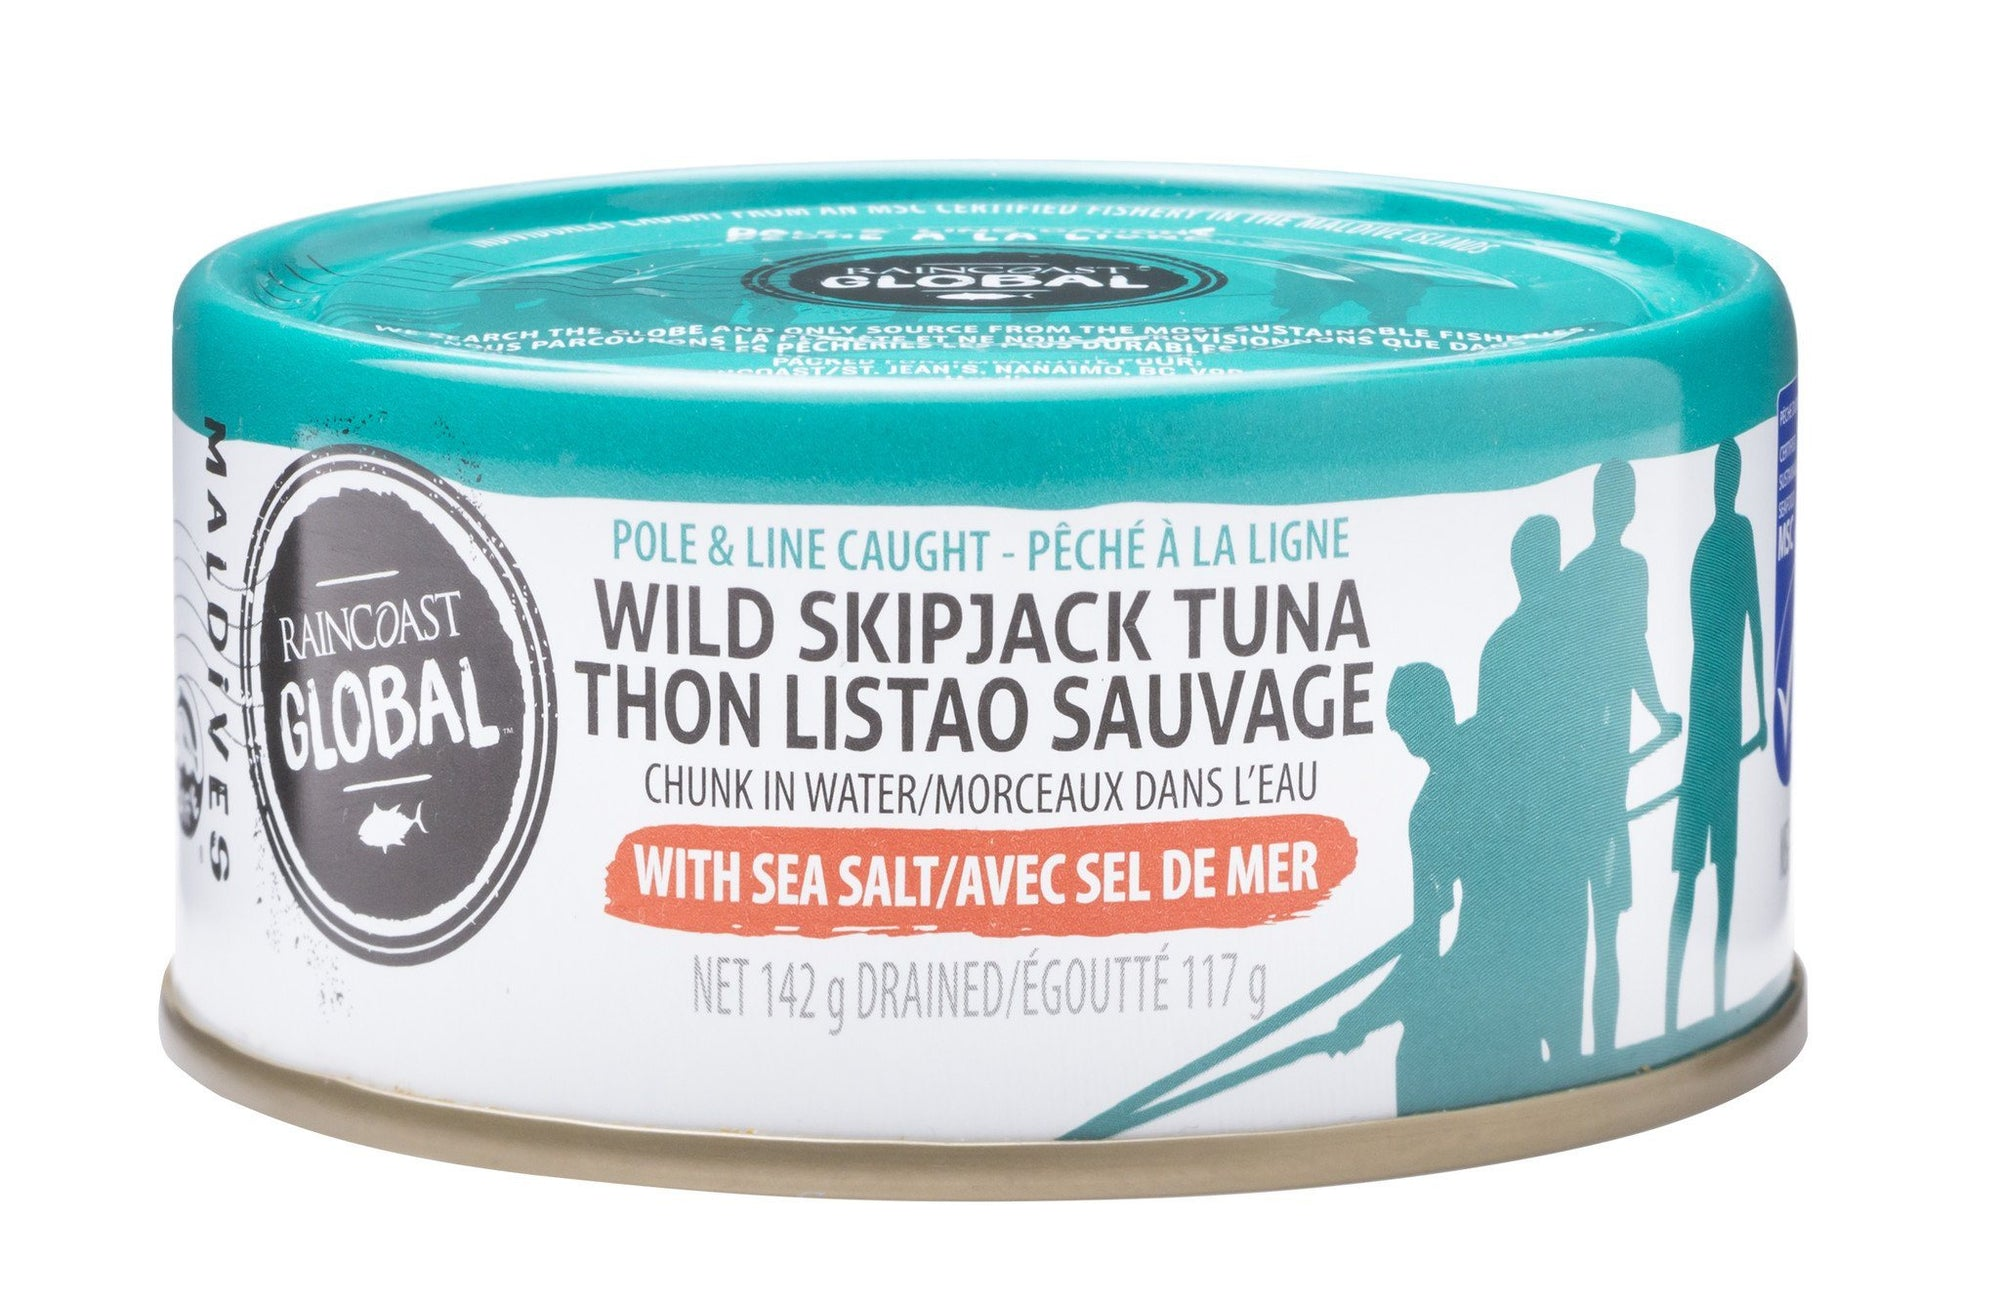 Food & Drink - Raincoast Trading - Skipjack Tuna With Sea Salt, 142g